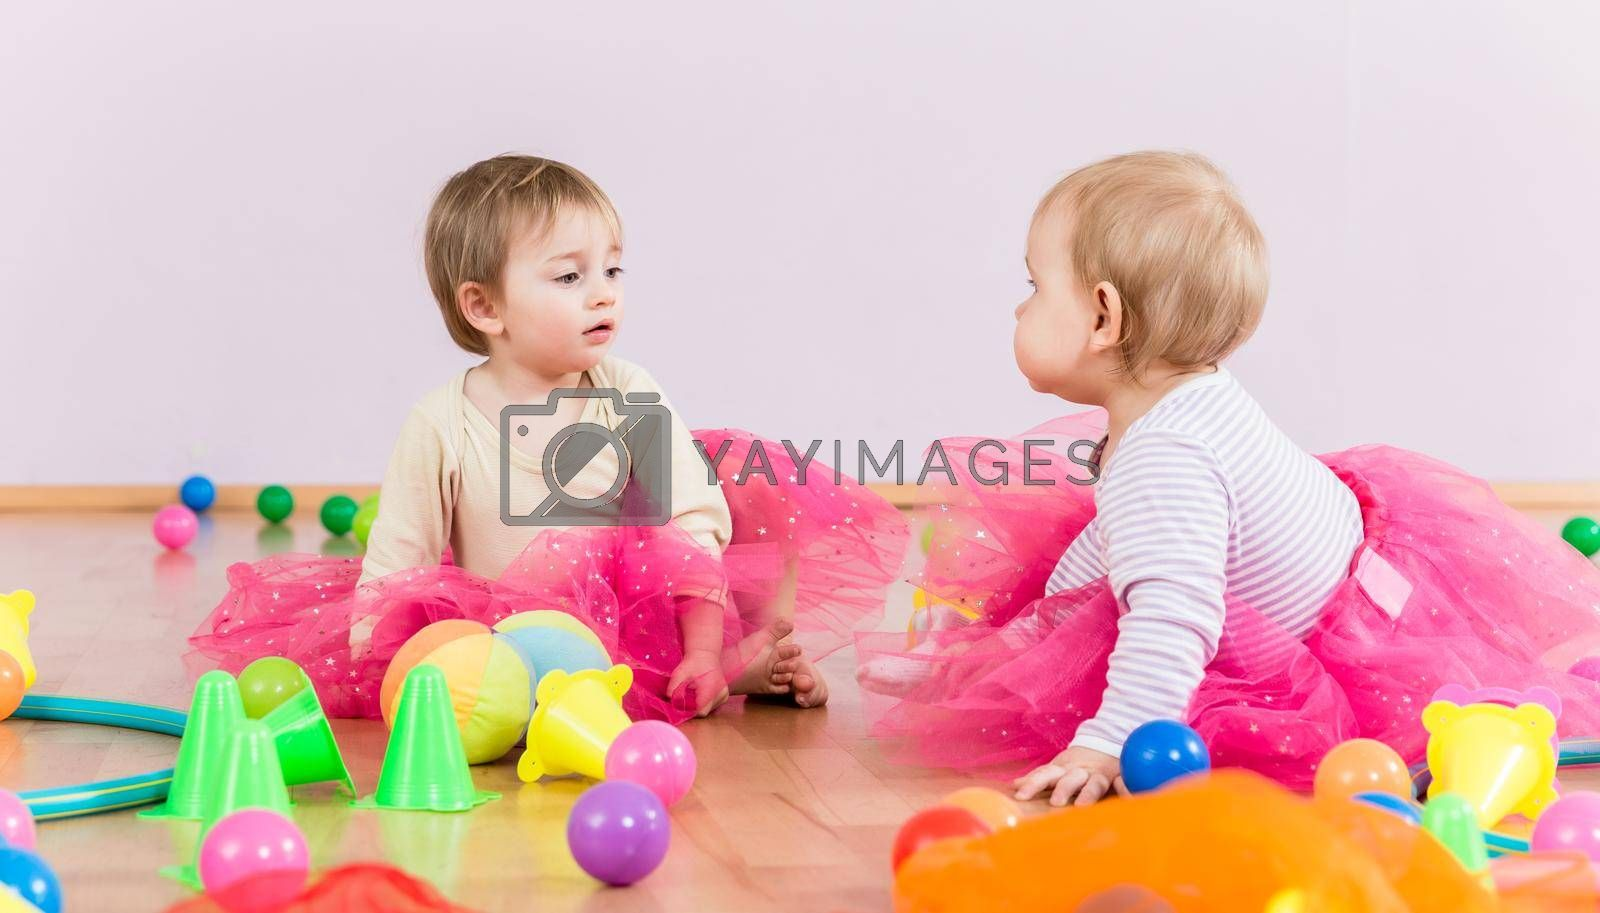 Royalty free image of Two toddlers playing together by Kzenon